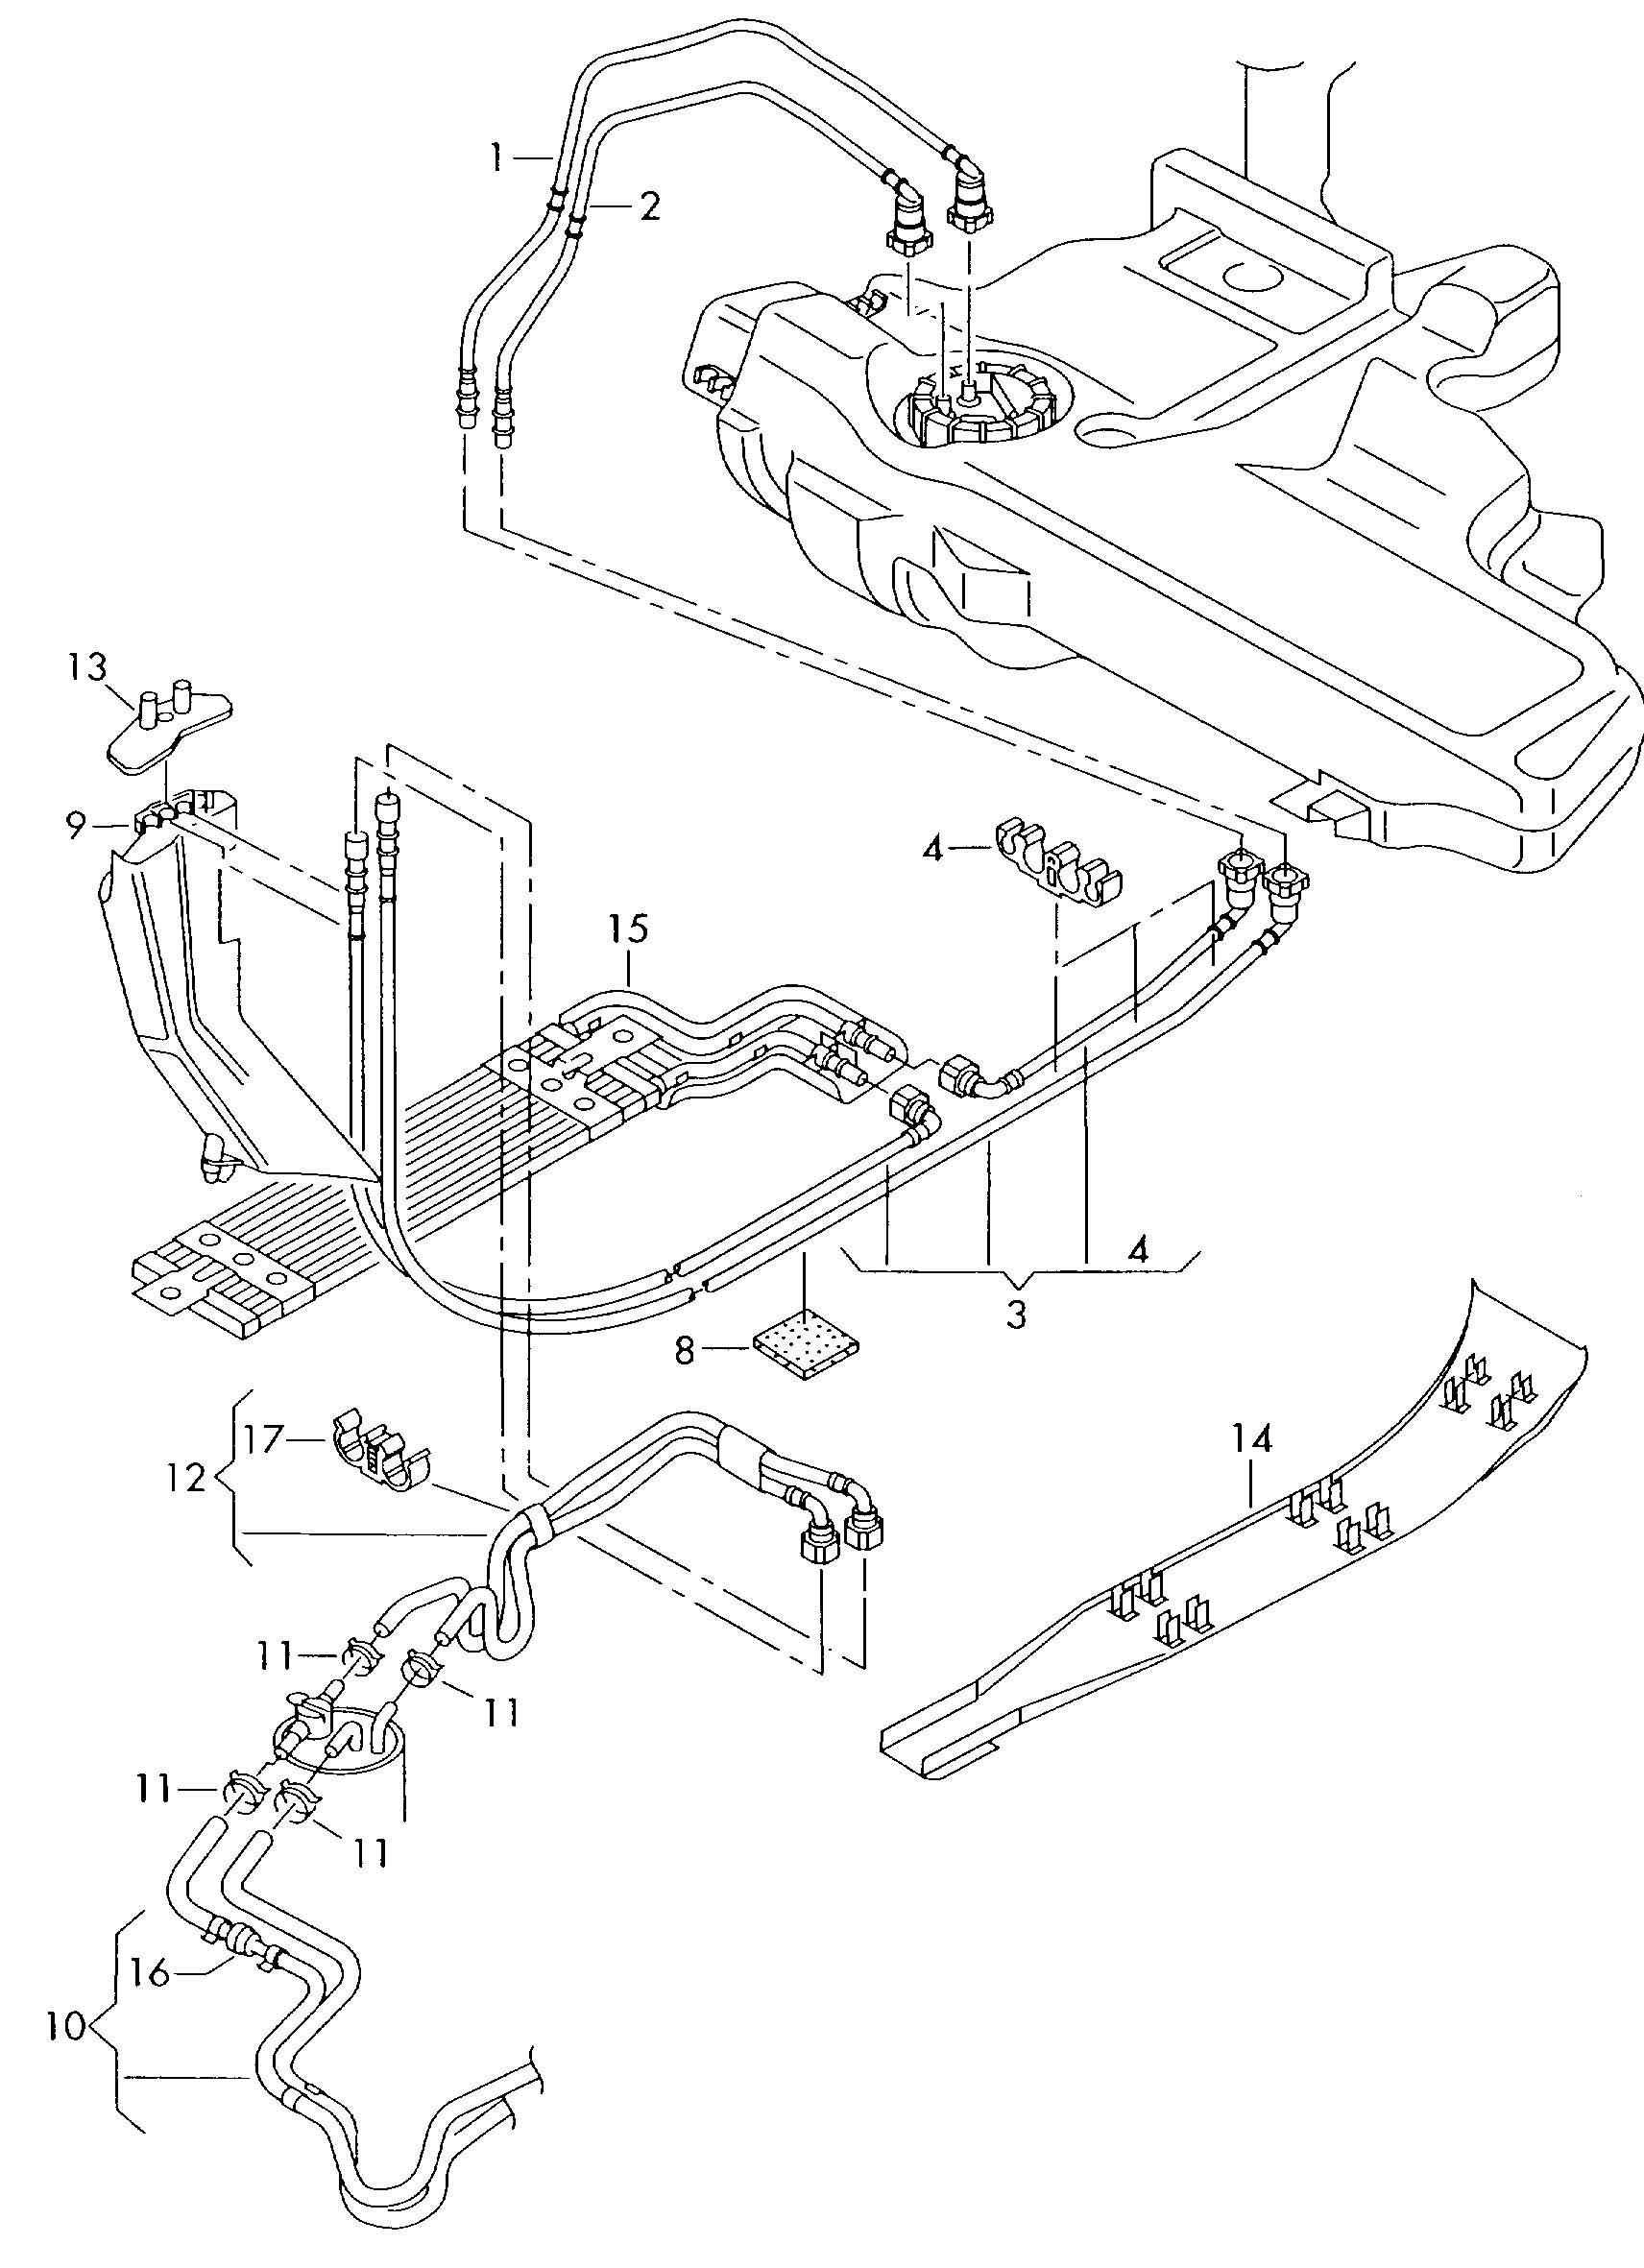 hight resolution of 2000 vw new beetle engine diagram 2000 free engine image 1970 vw beetle engine diagram 2001